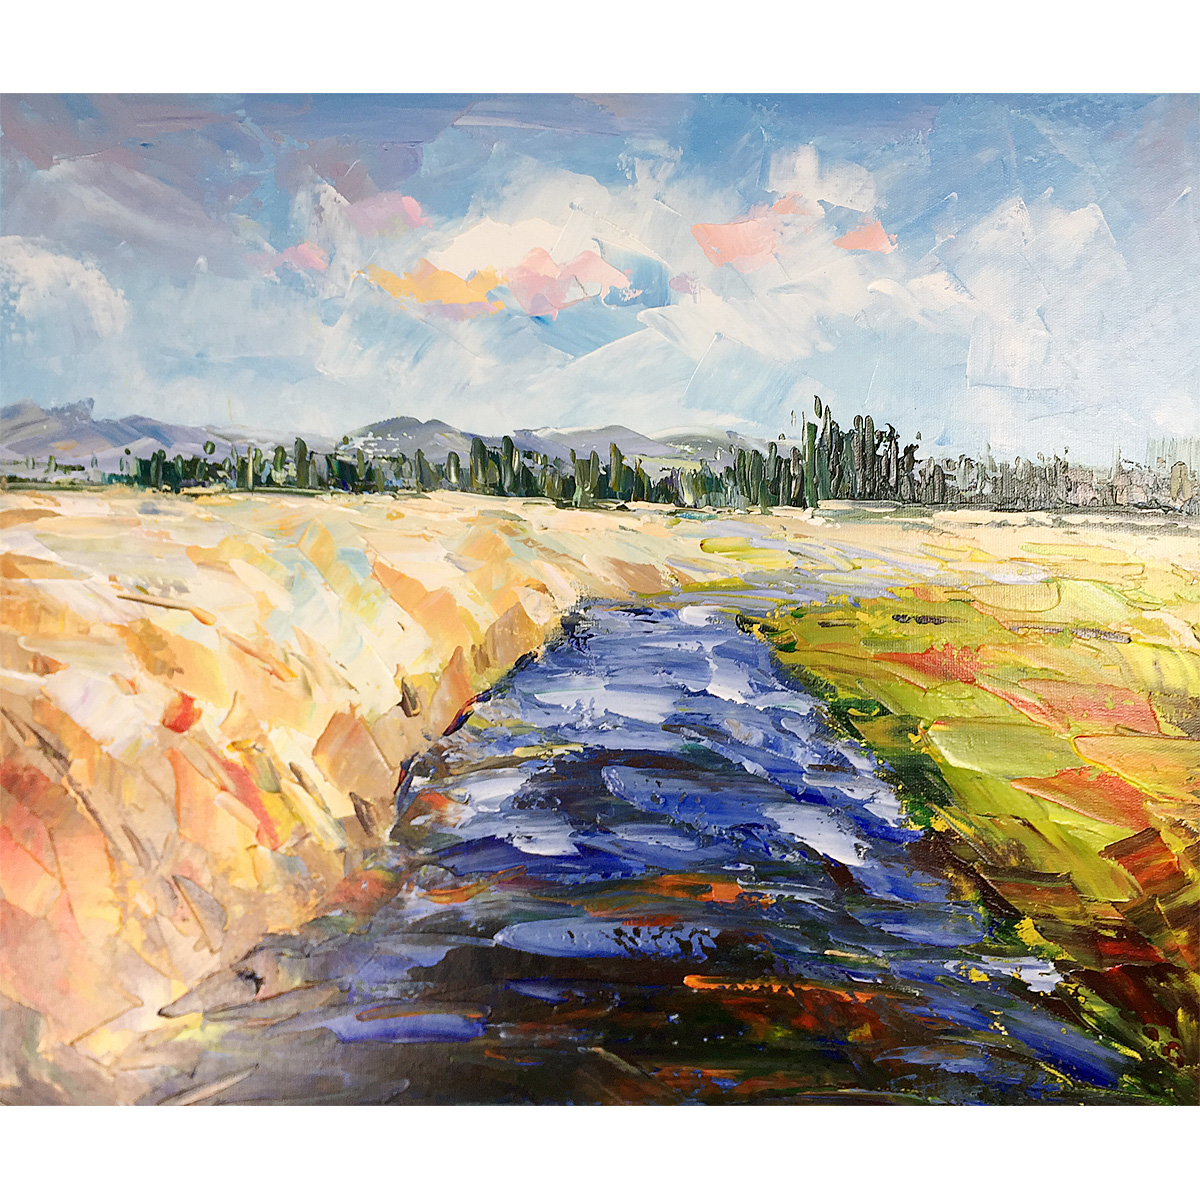 Original Oil Painting Hand-Painted Canvas Blue River Abstract Landscape Contemporary Wall Art Work